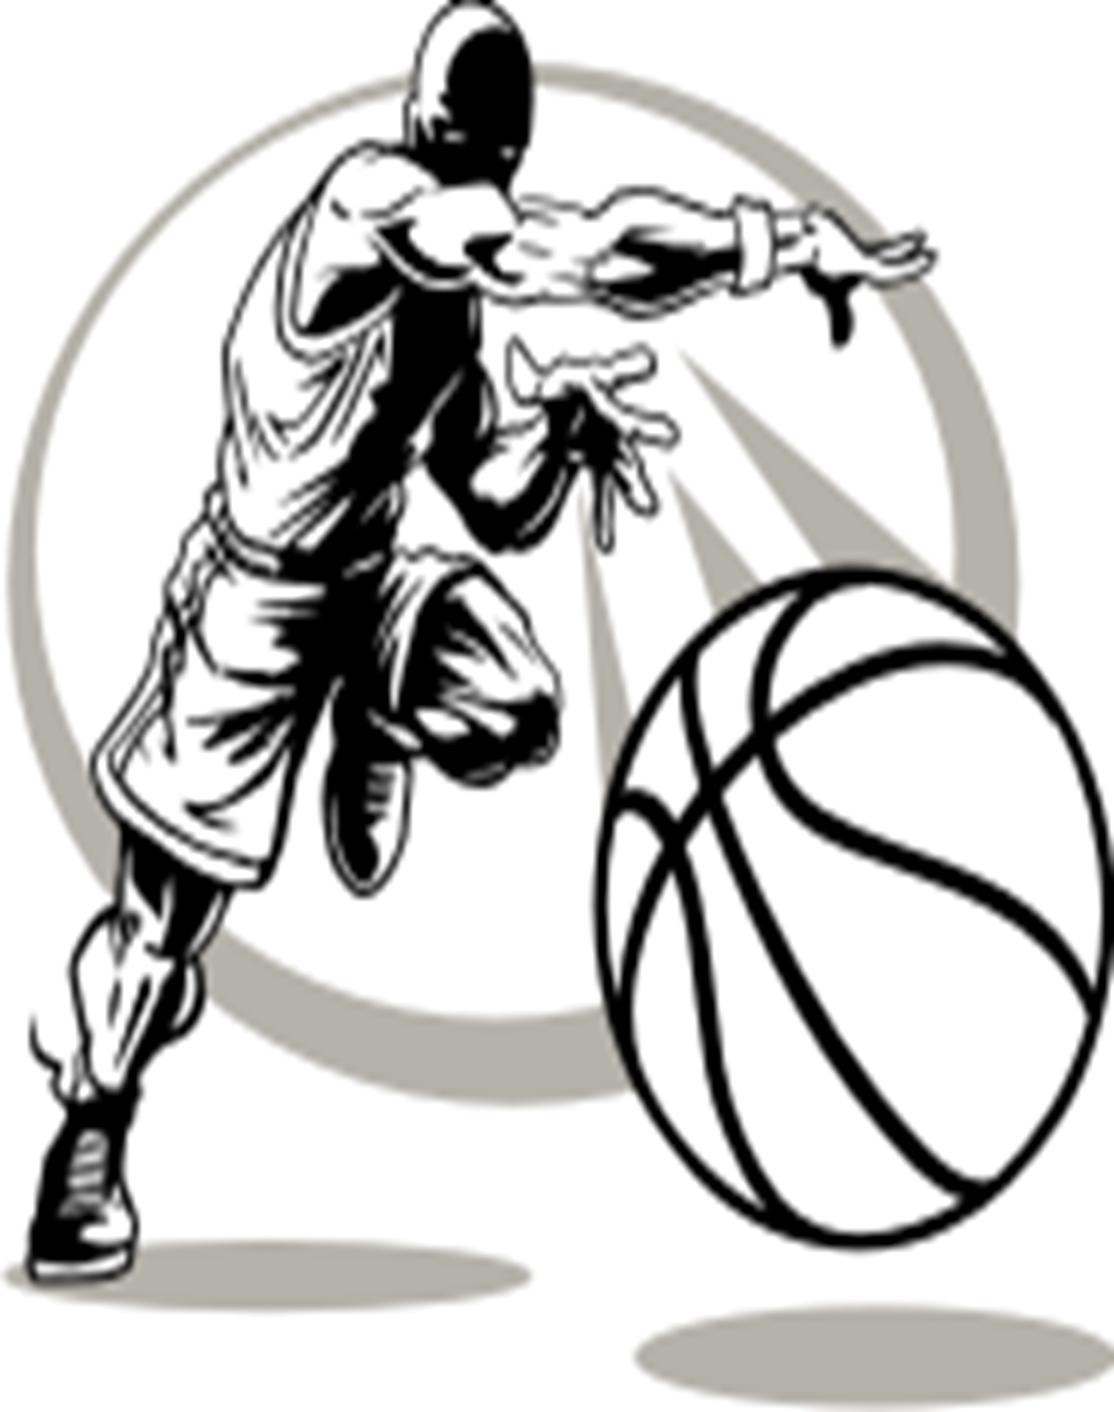 Free Basketballs Cliparts Download Free Clip Art Free Clip Art On Clipart Library